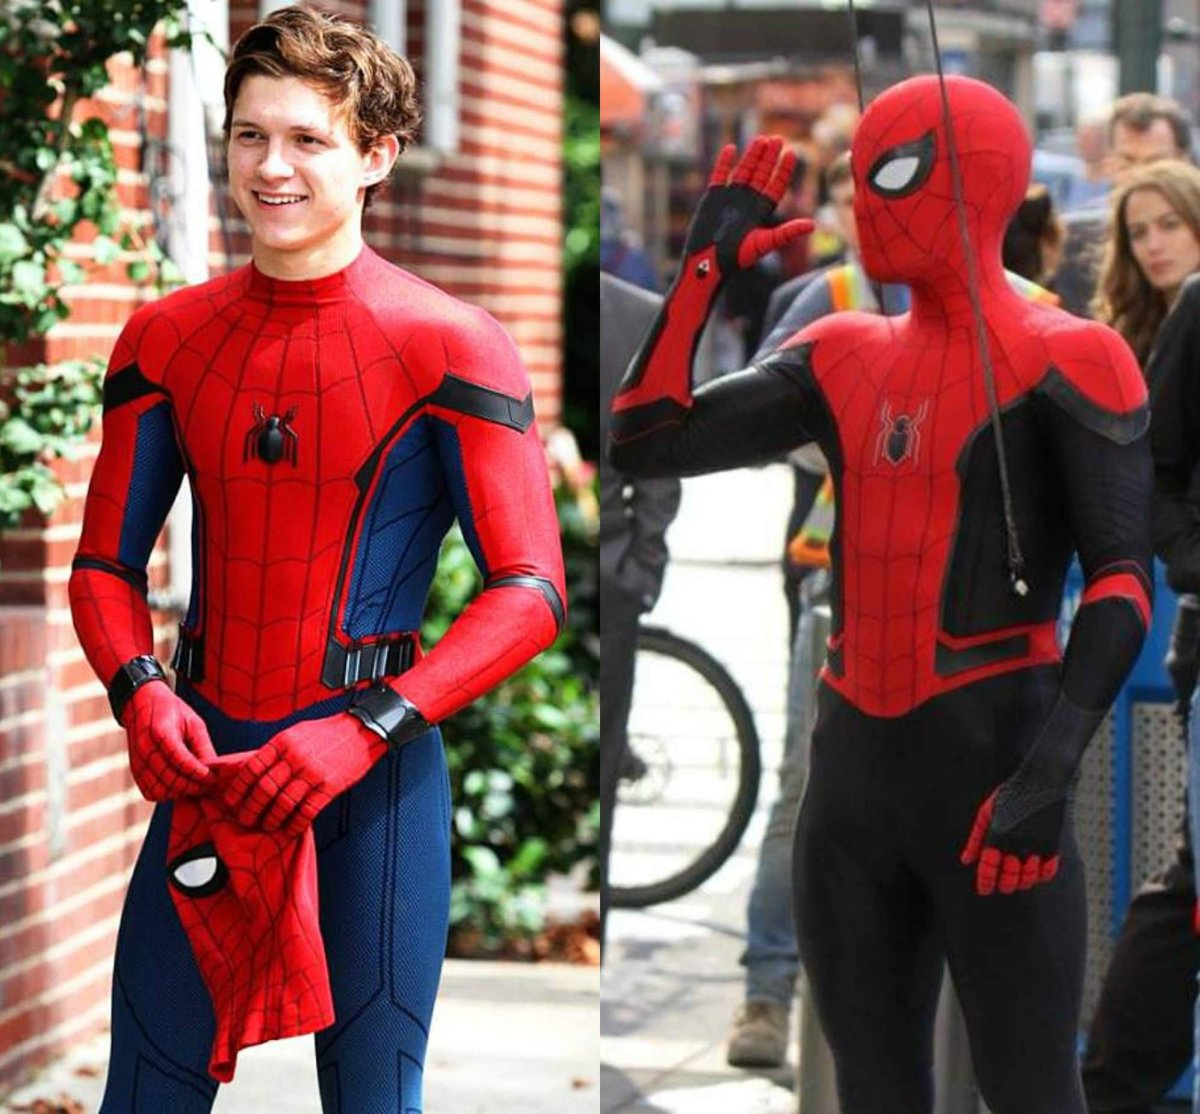 Spider-Man has a new Default Costume for Spider-Man Far From Home